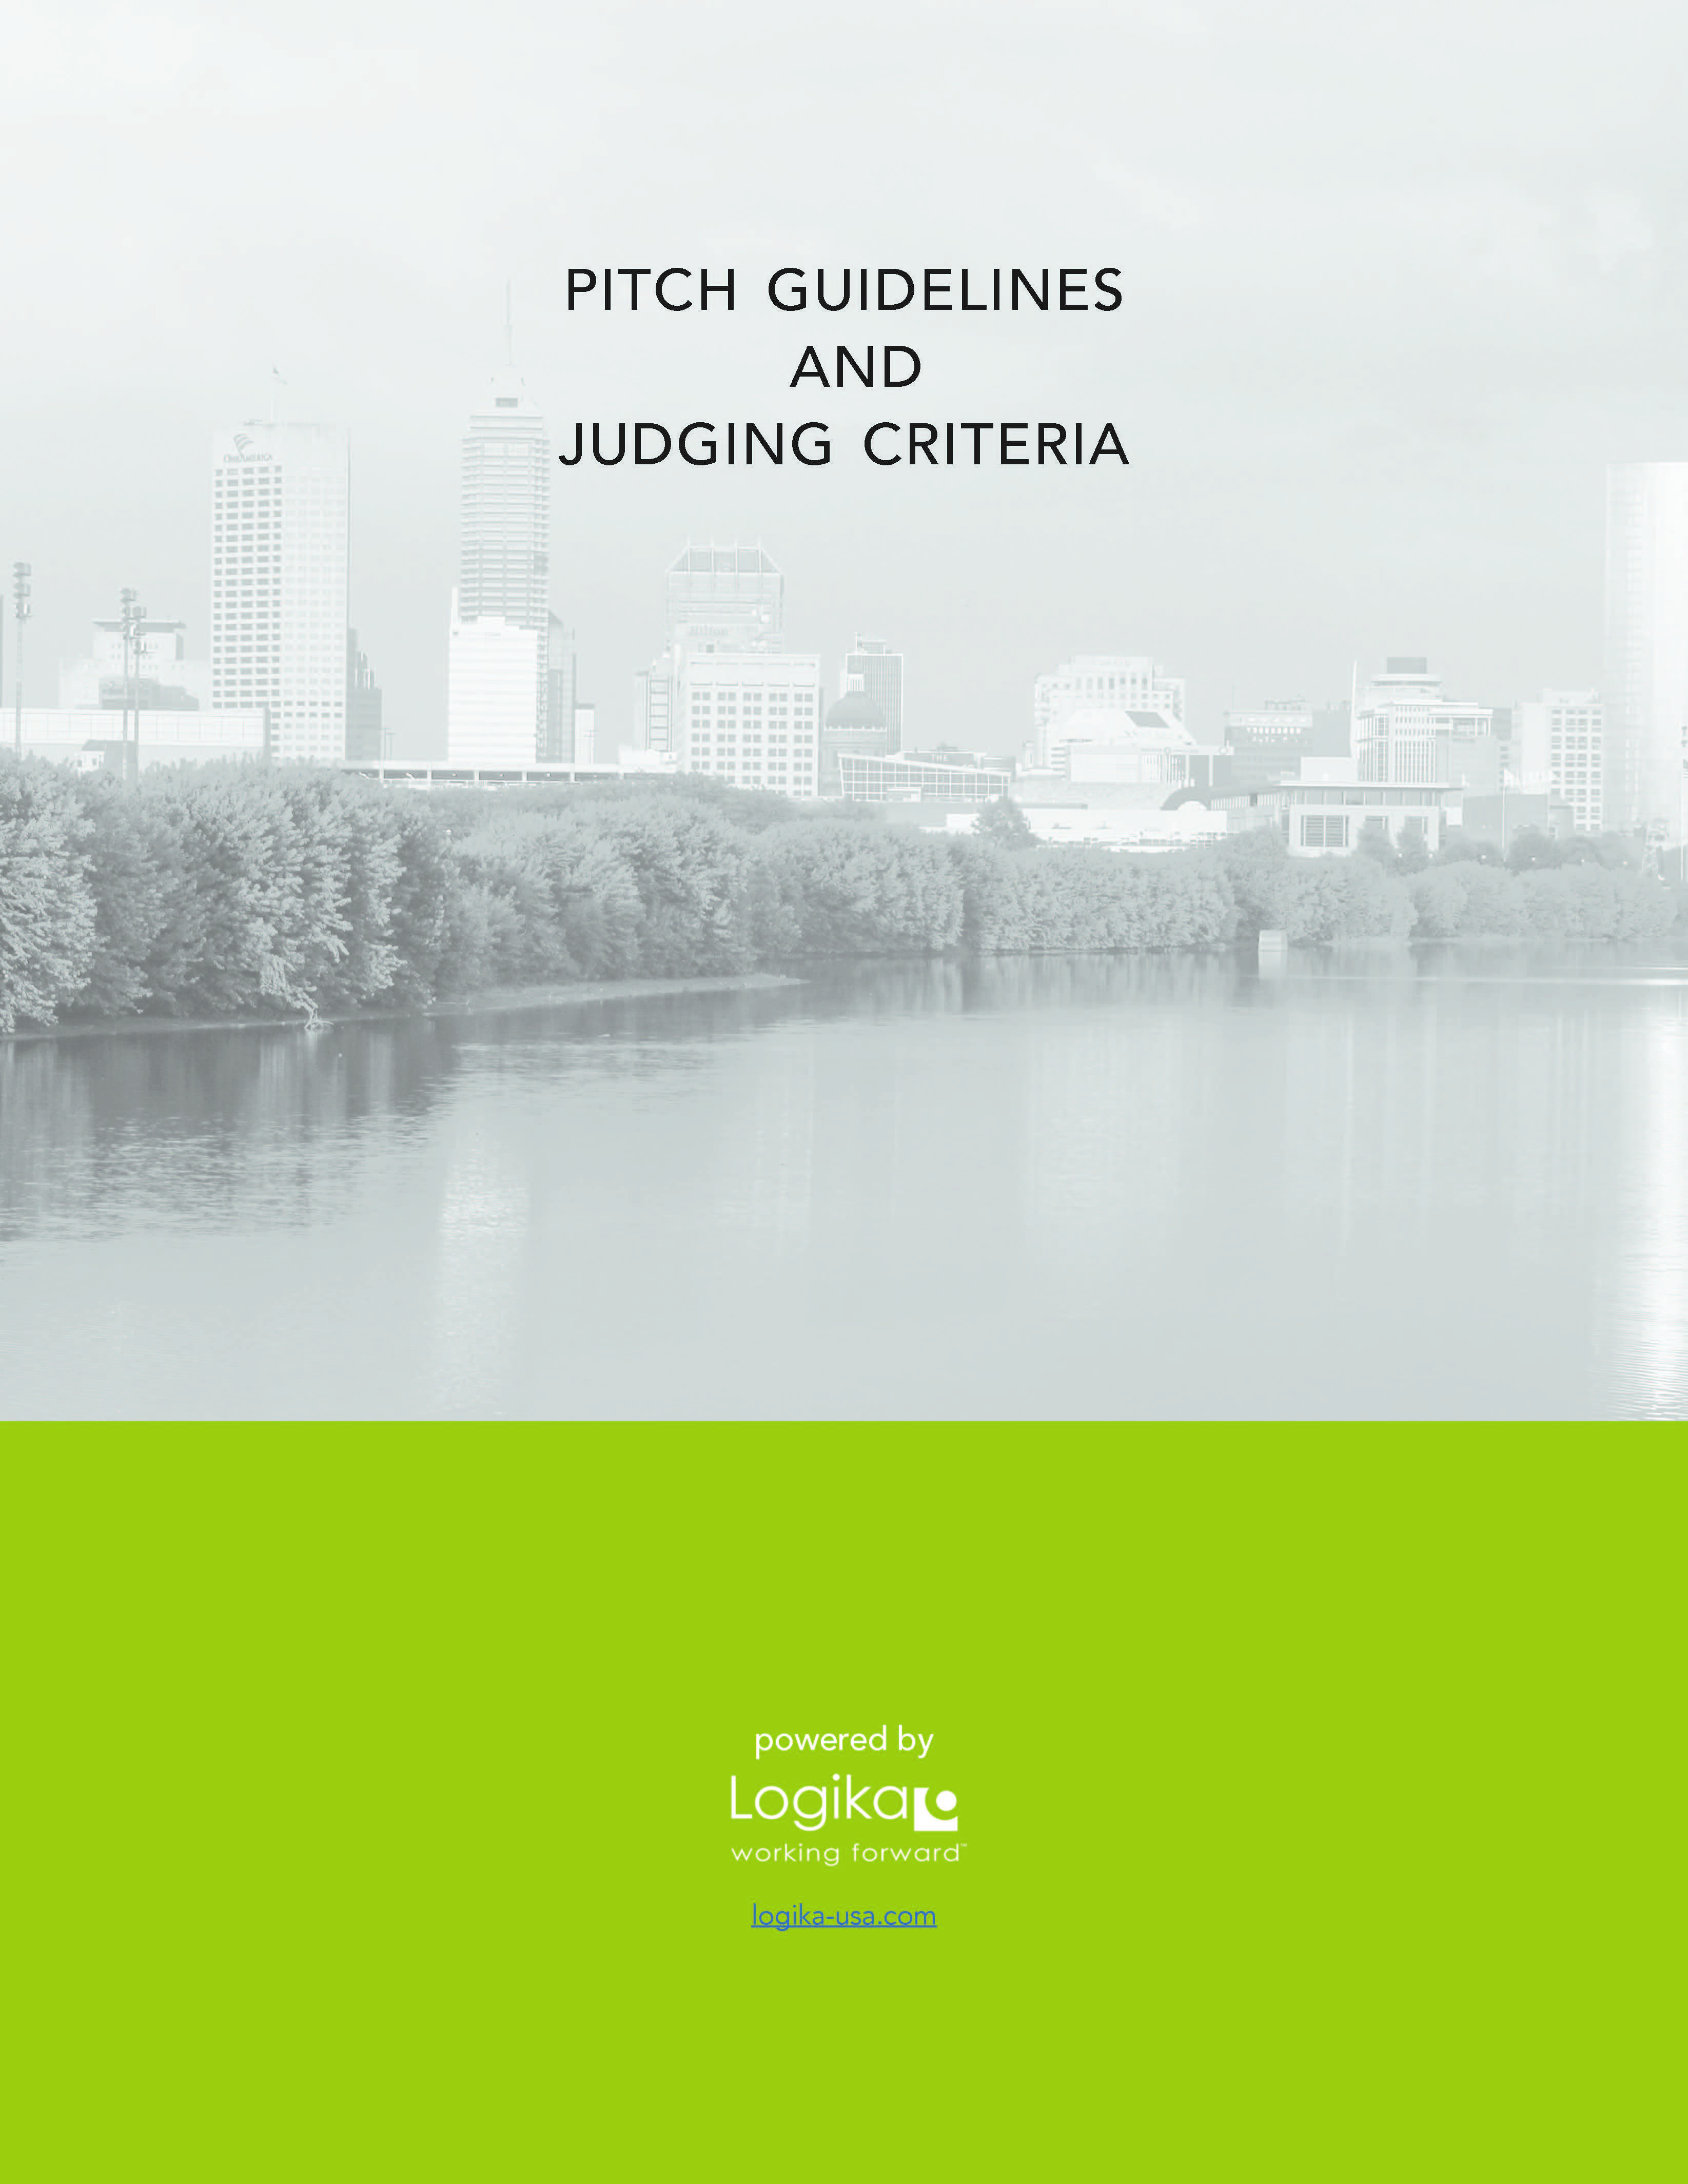 Pitch Guidelines and Judging Criteria vx1.04 Office Copy